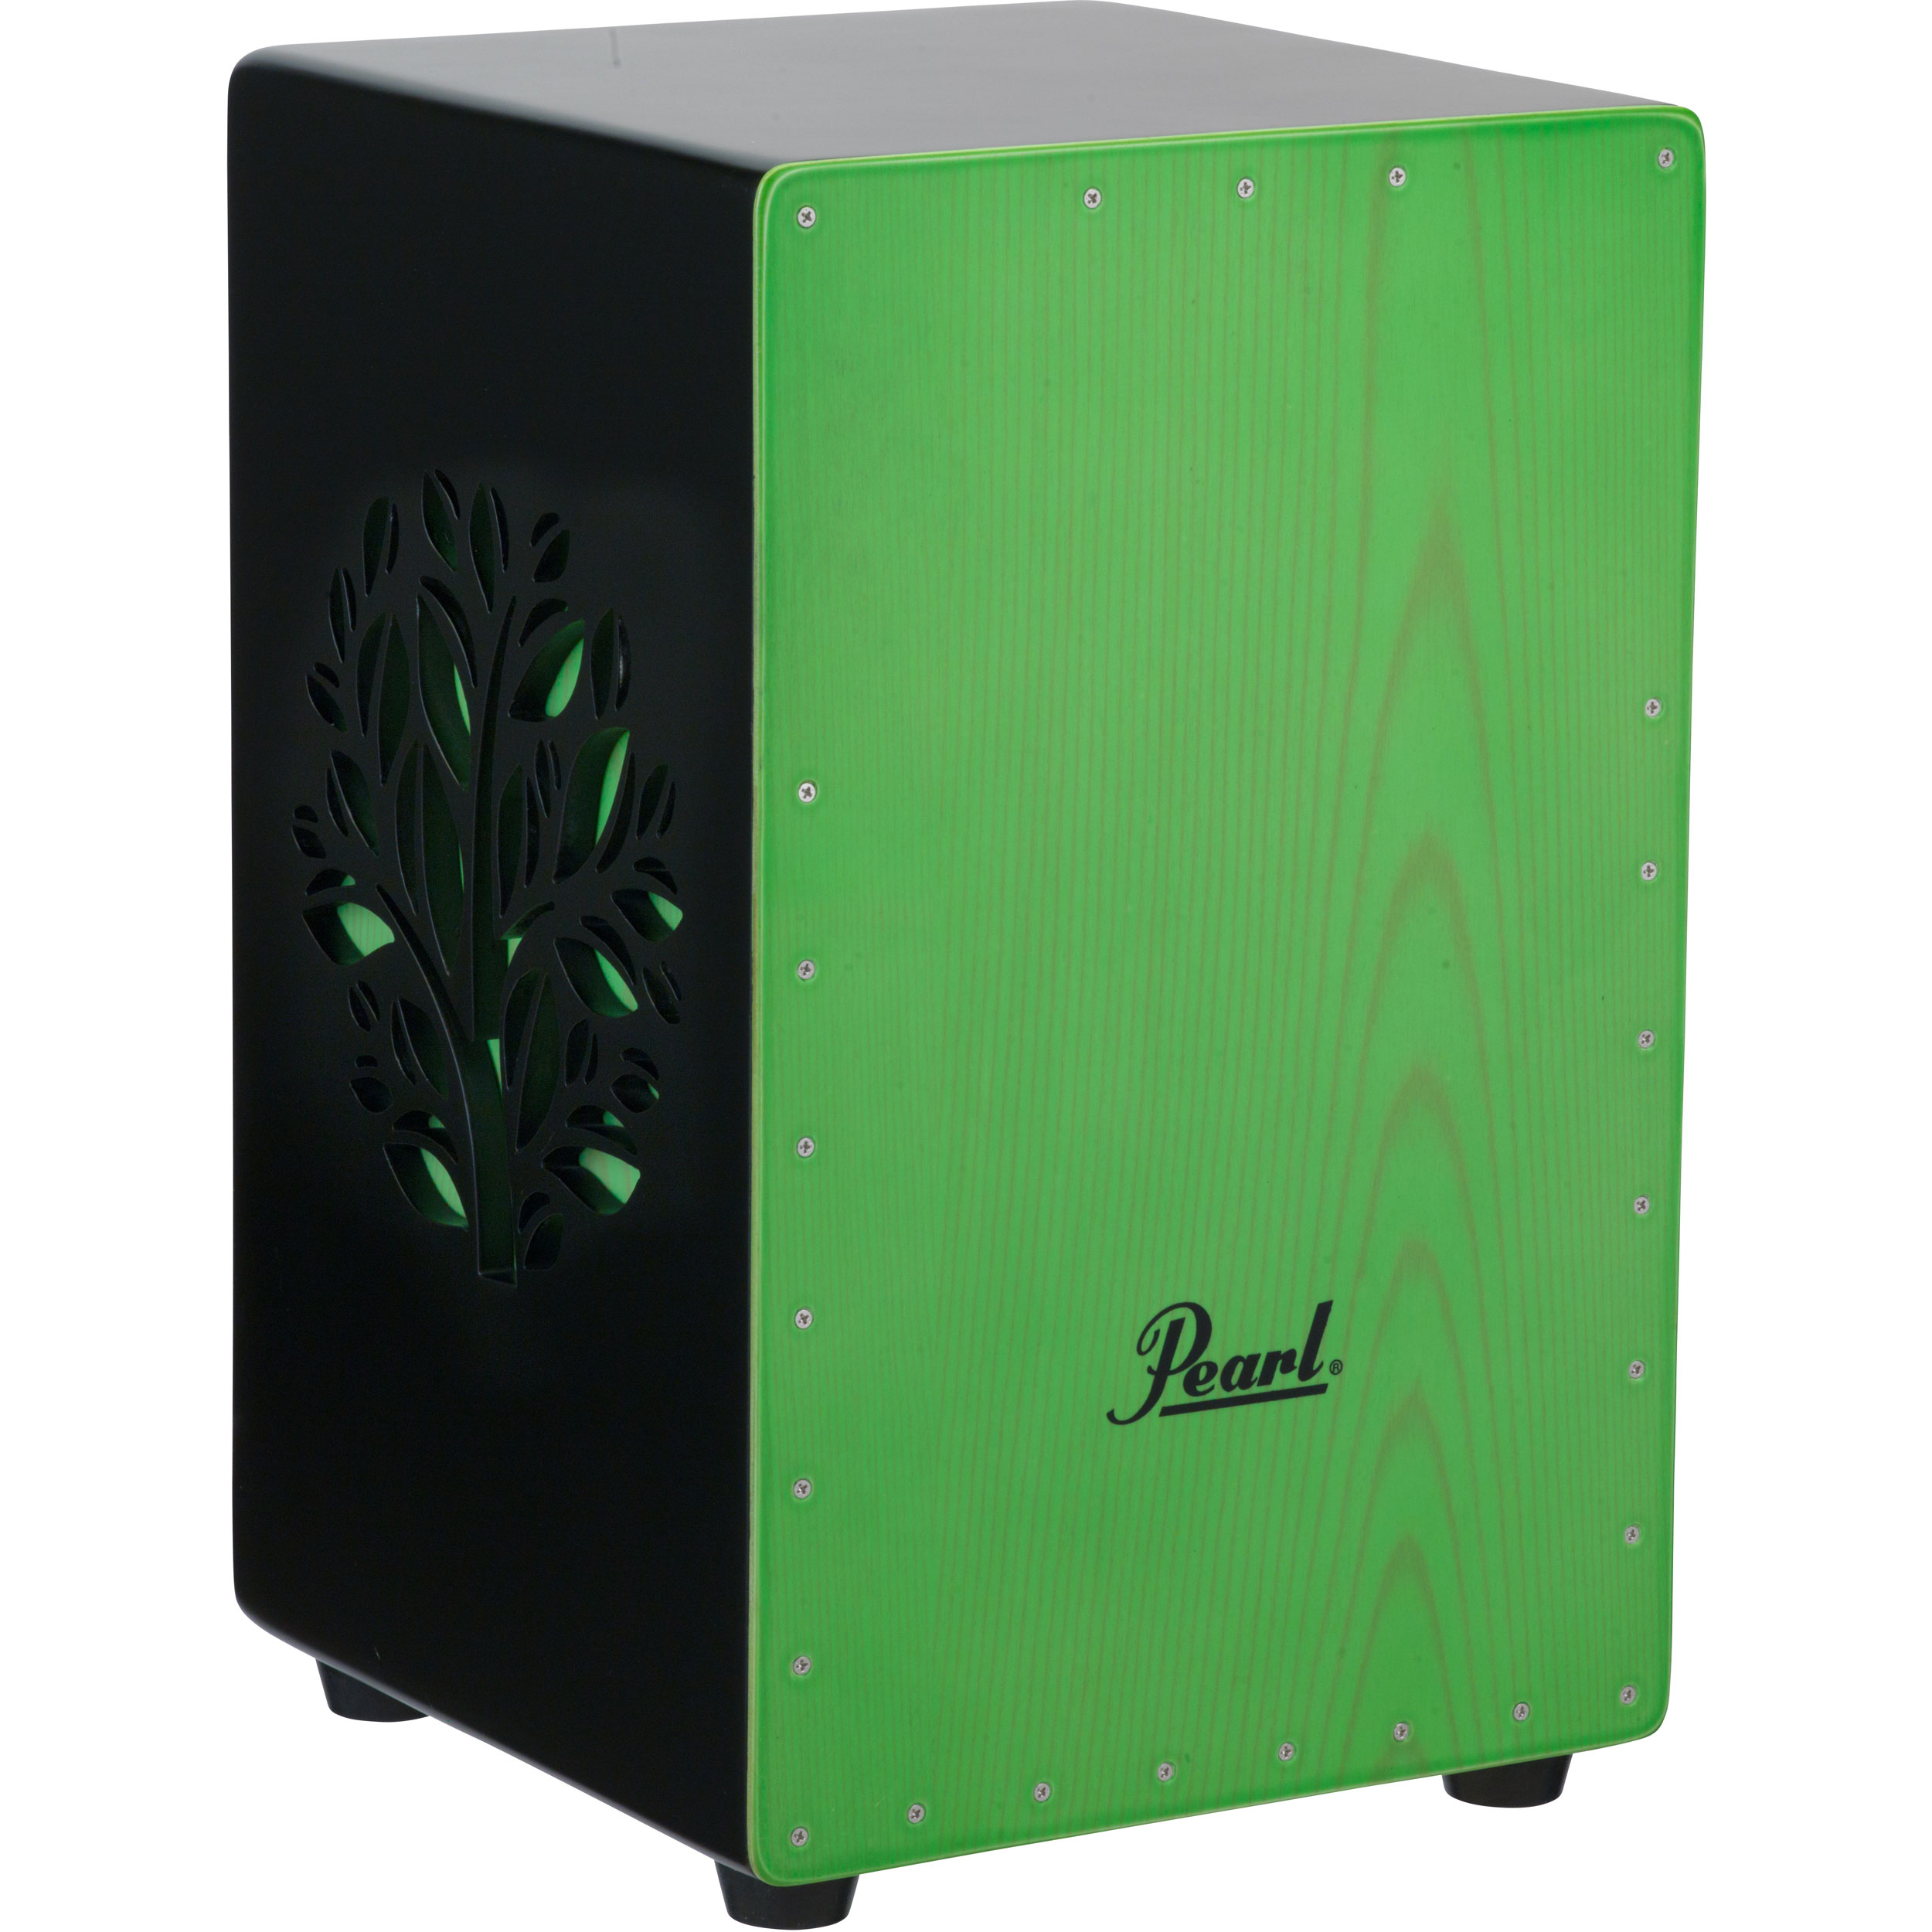 Pearl 3D Cajon with Green Wood Design